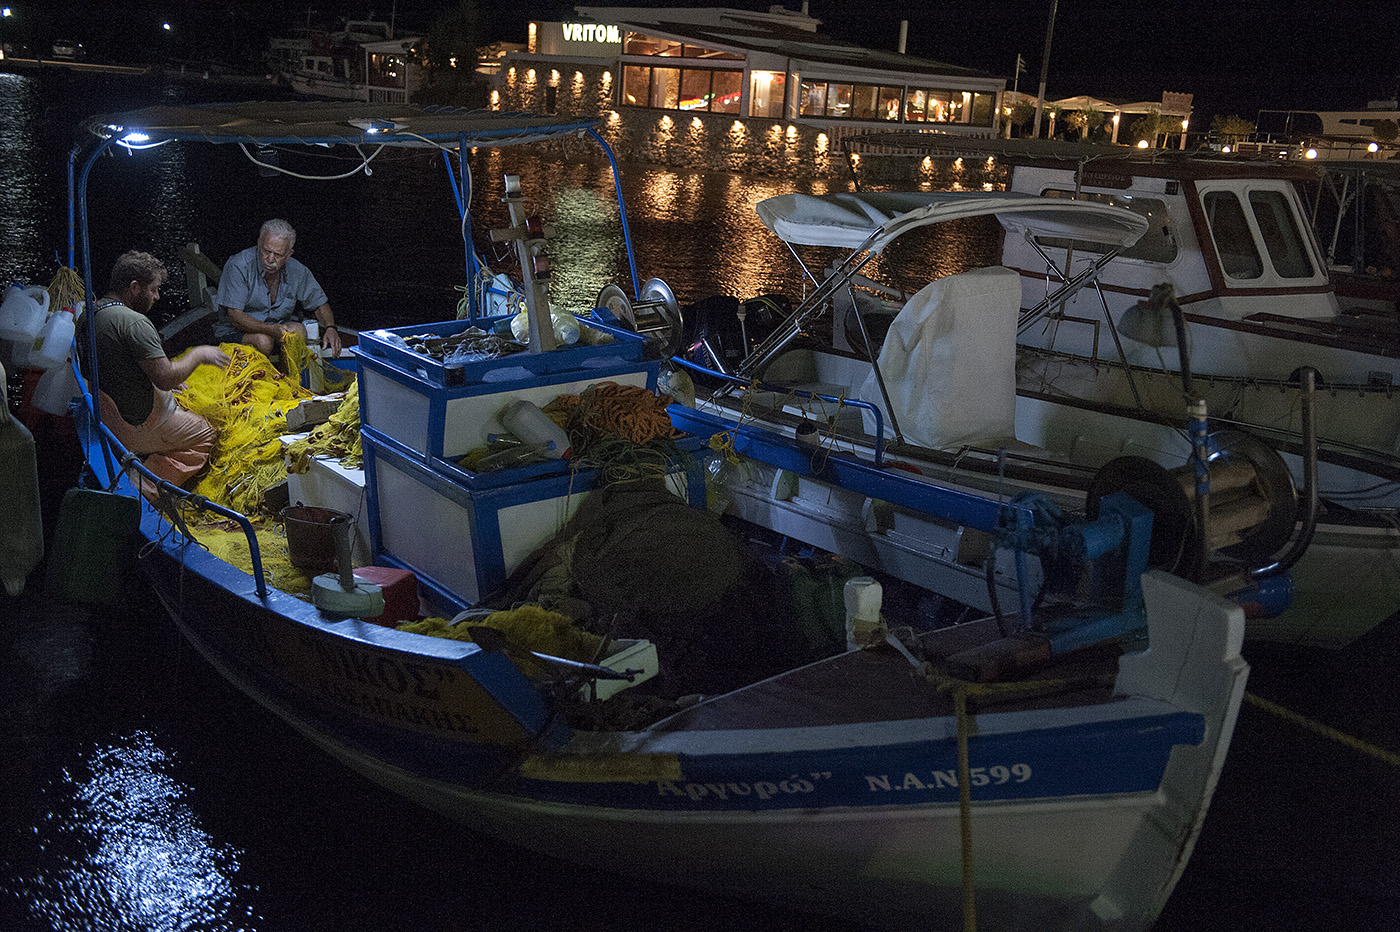 Fishermen at night in Elounda, Crete, Greece